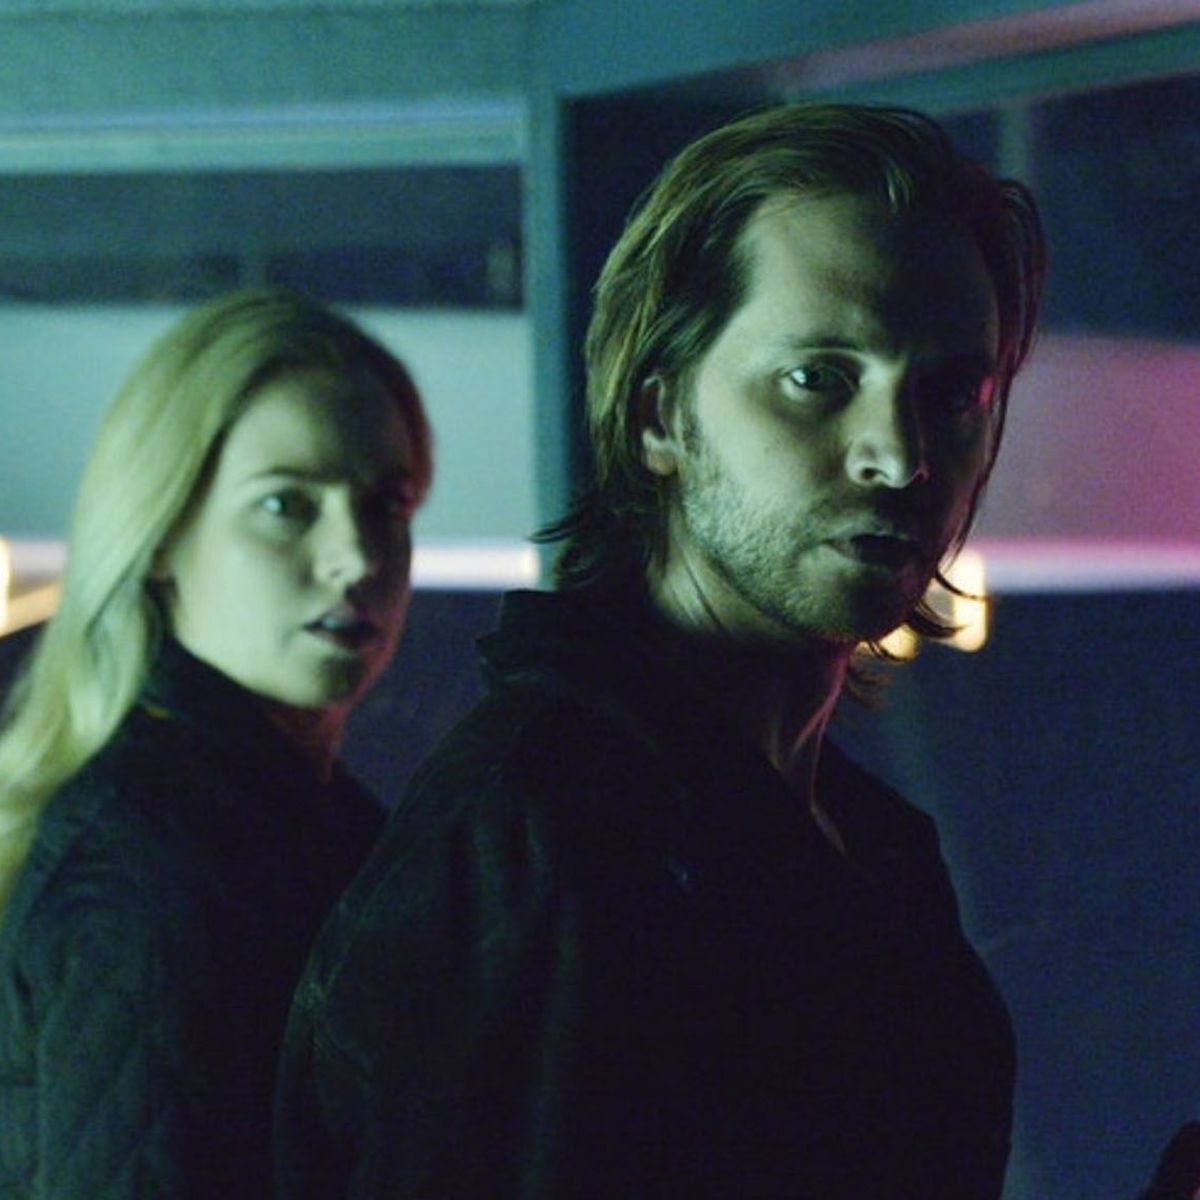 12 Monkeys season 4 episode 4